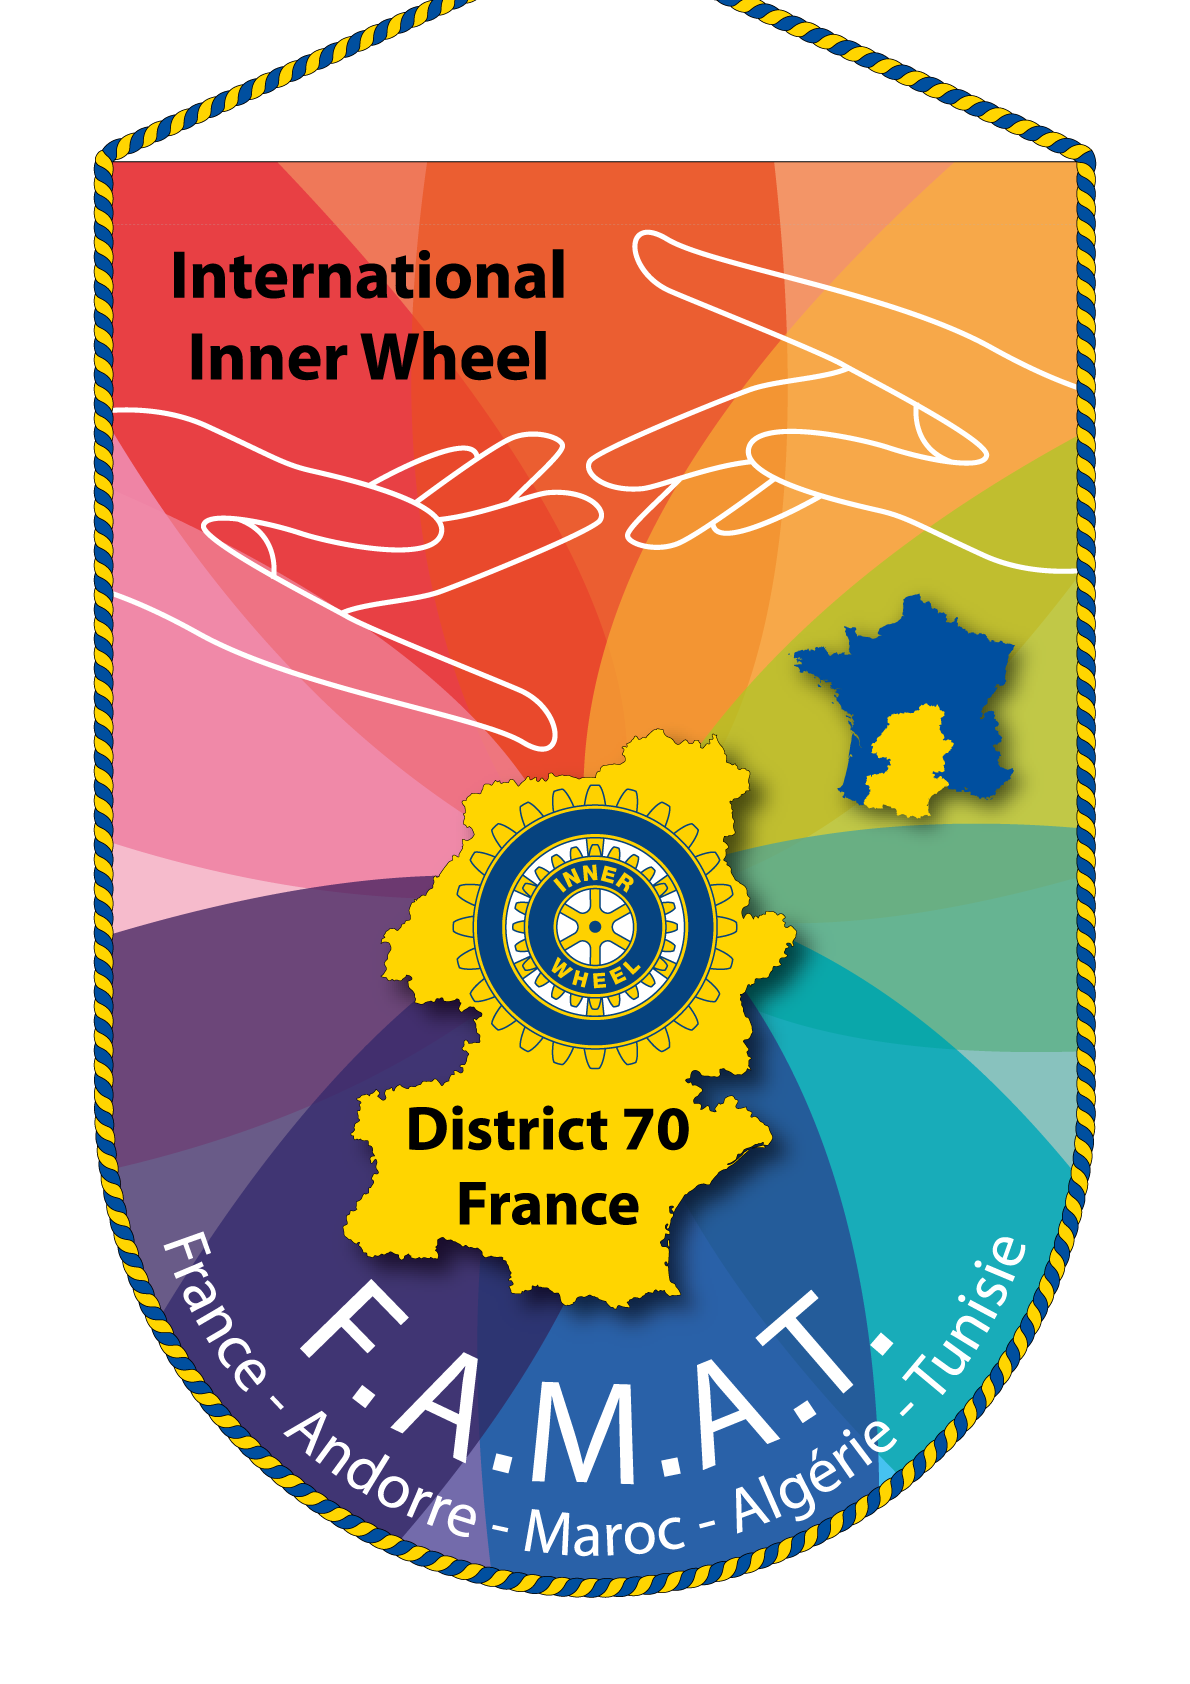 FANION INNER WHEEL DISTRICT 70